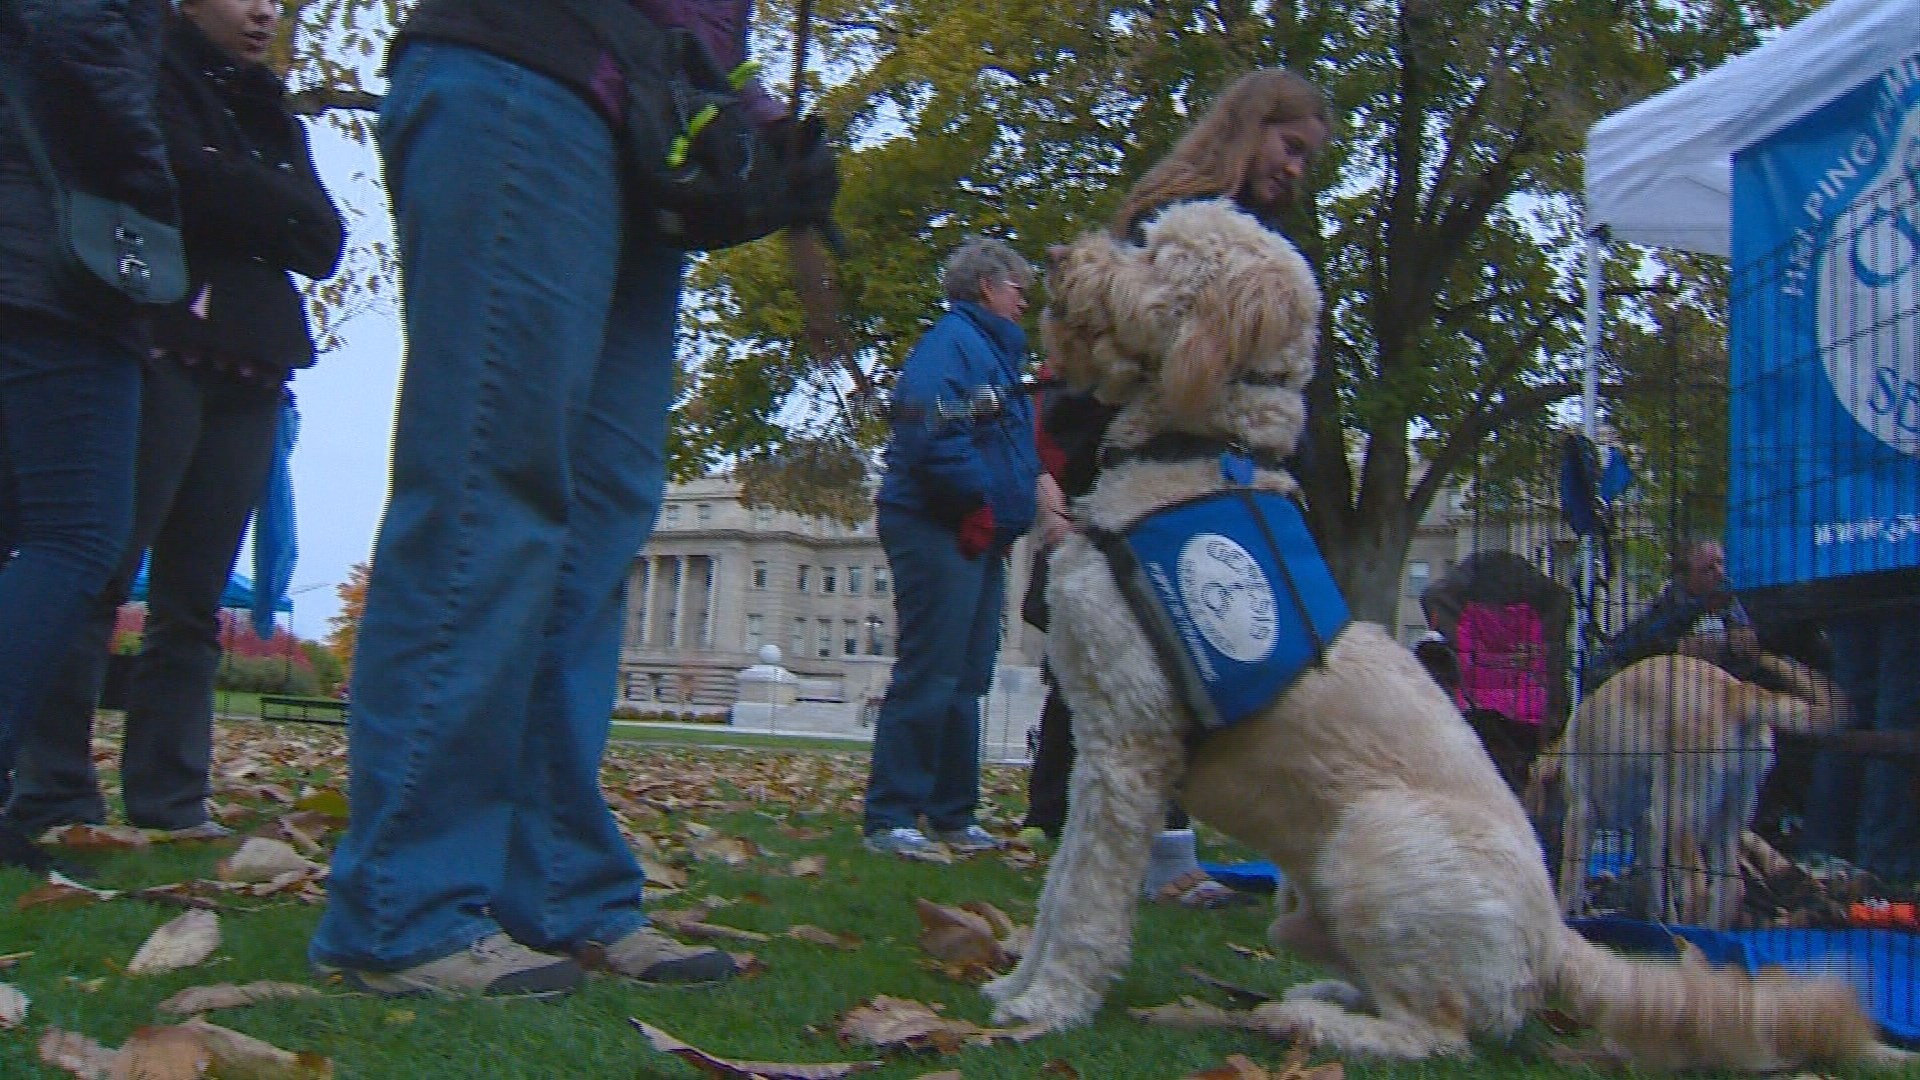 Service dogs honored at Boise event